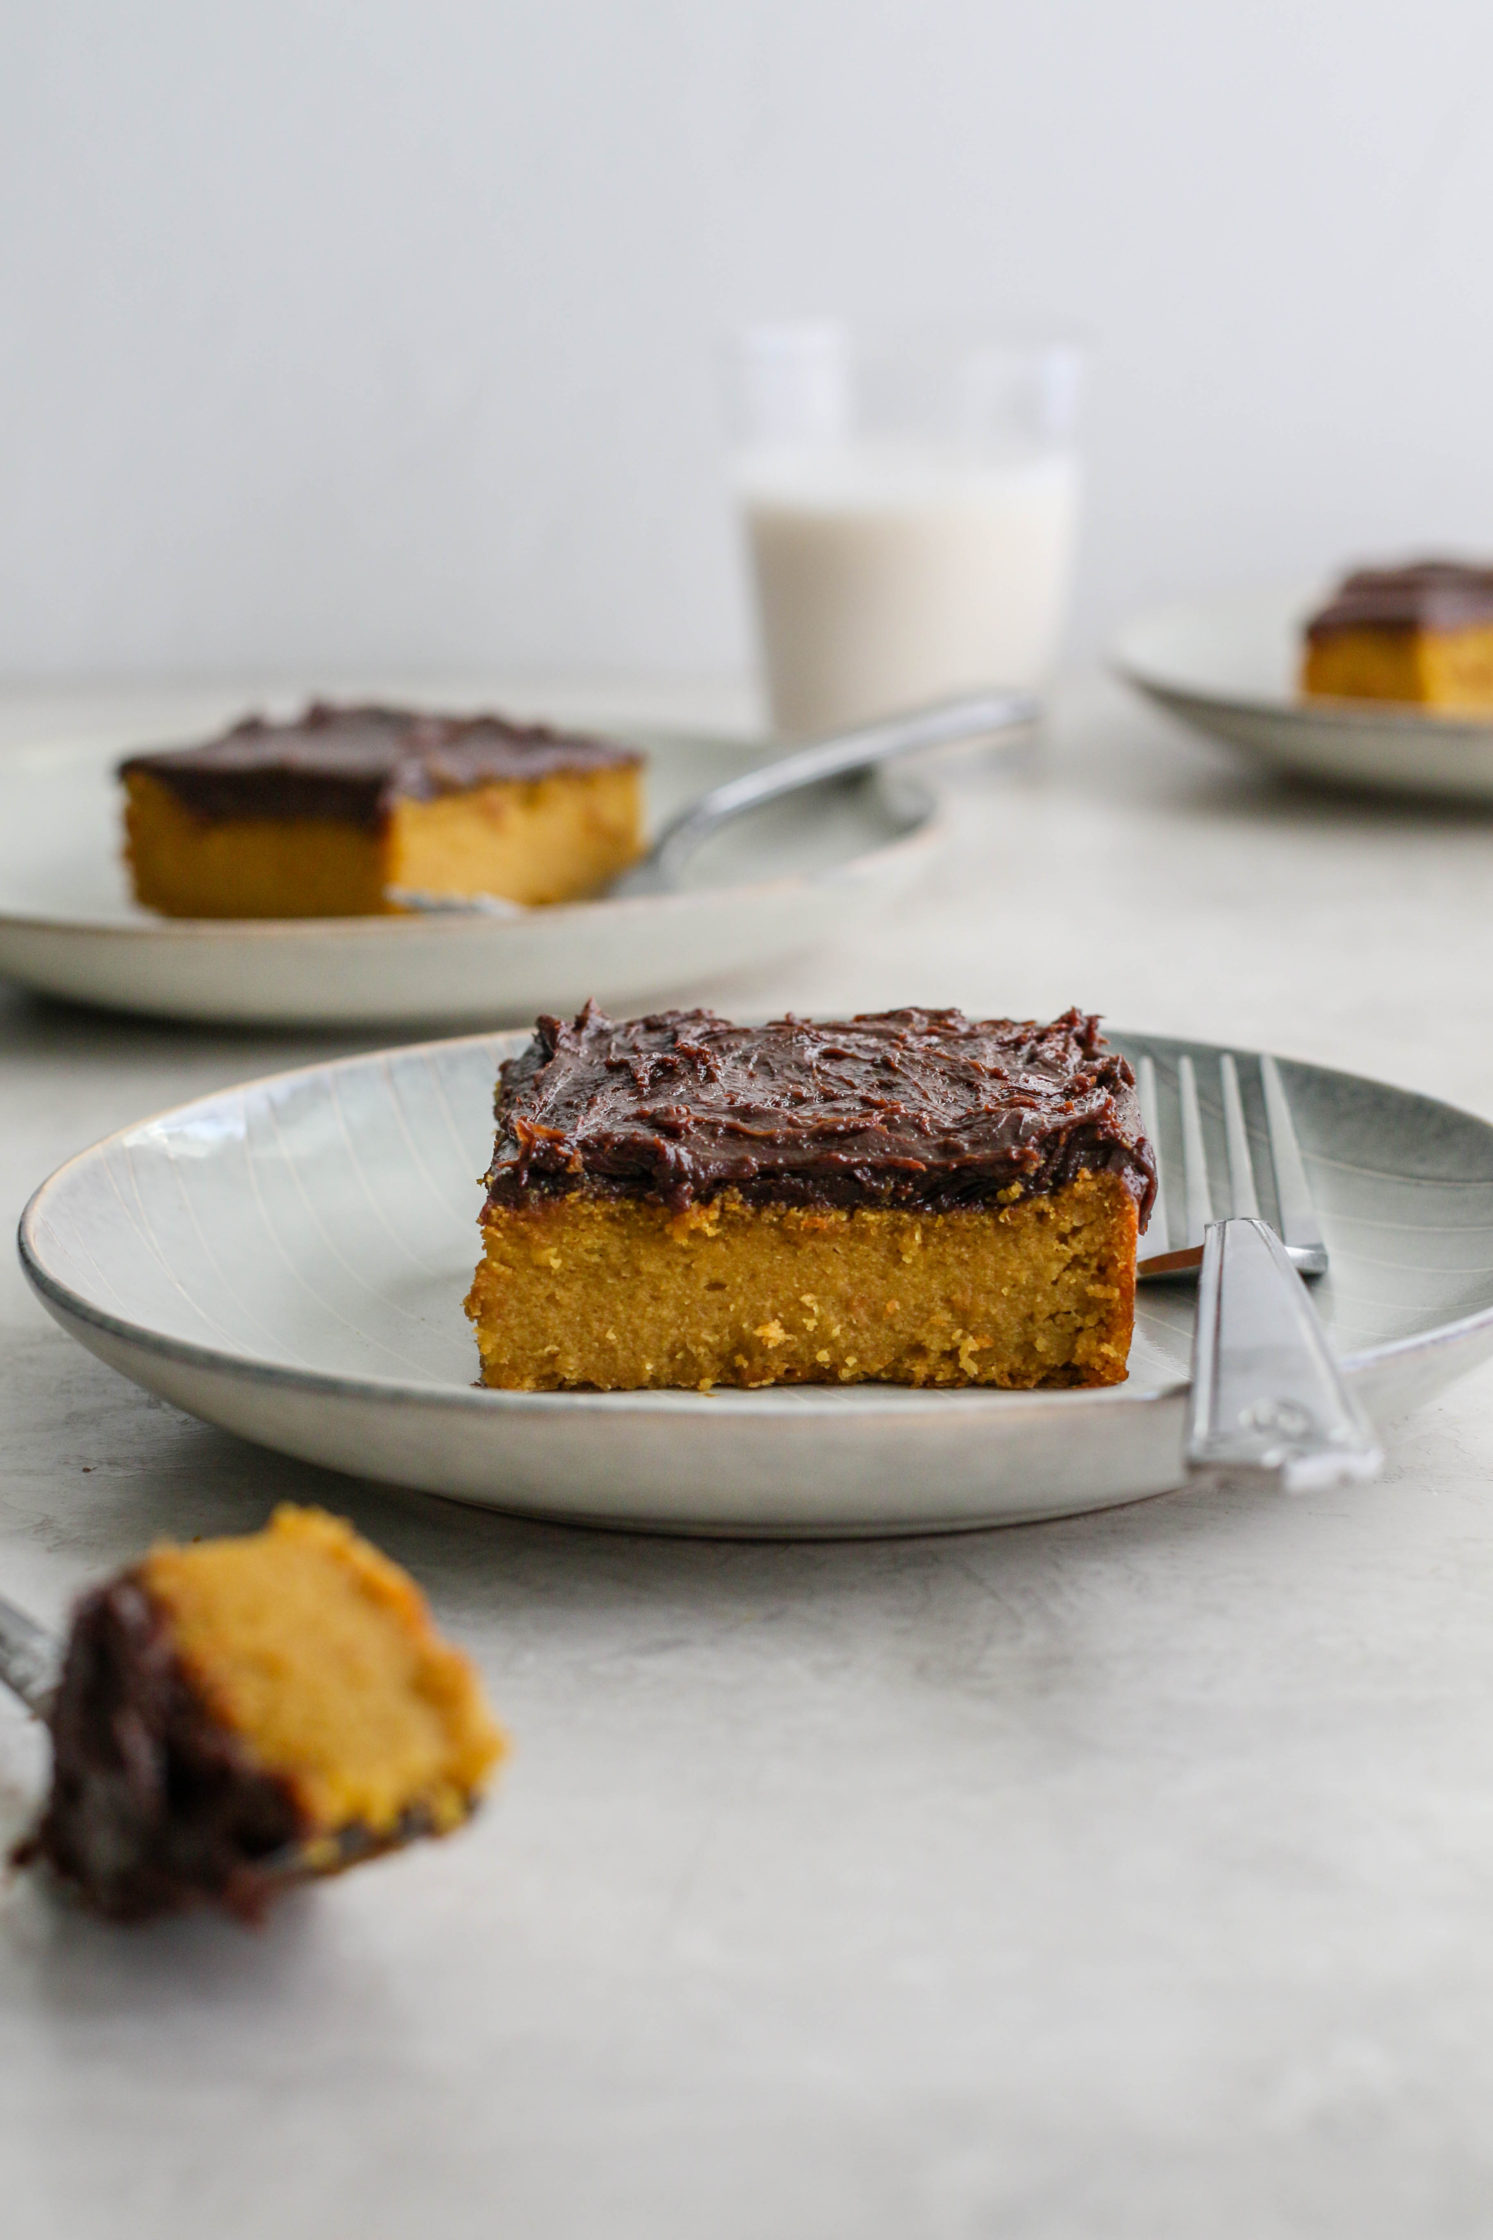 Yellow Cake with Chocolate SunButter Frosting by Flora & Vino